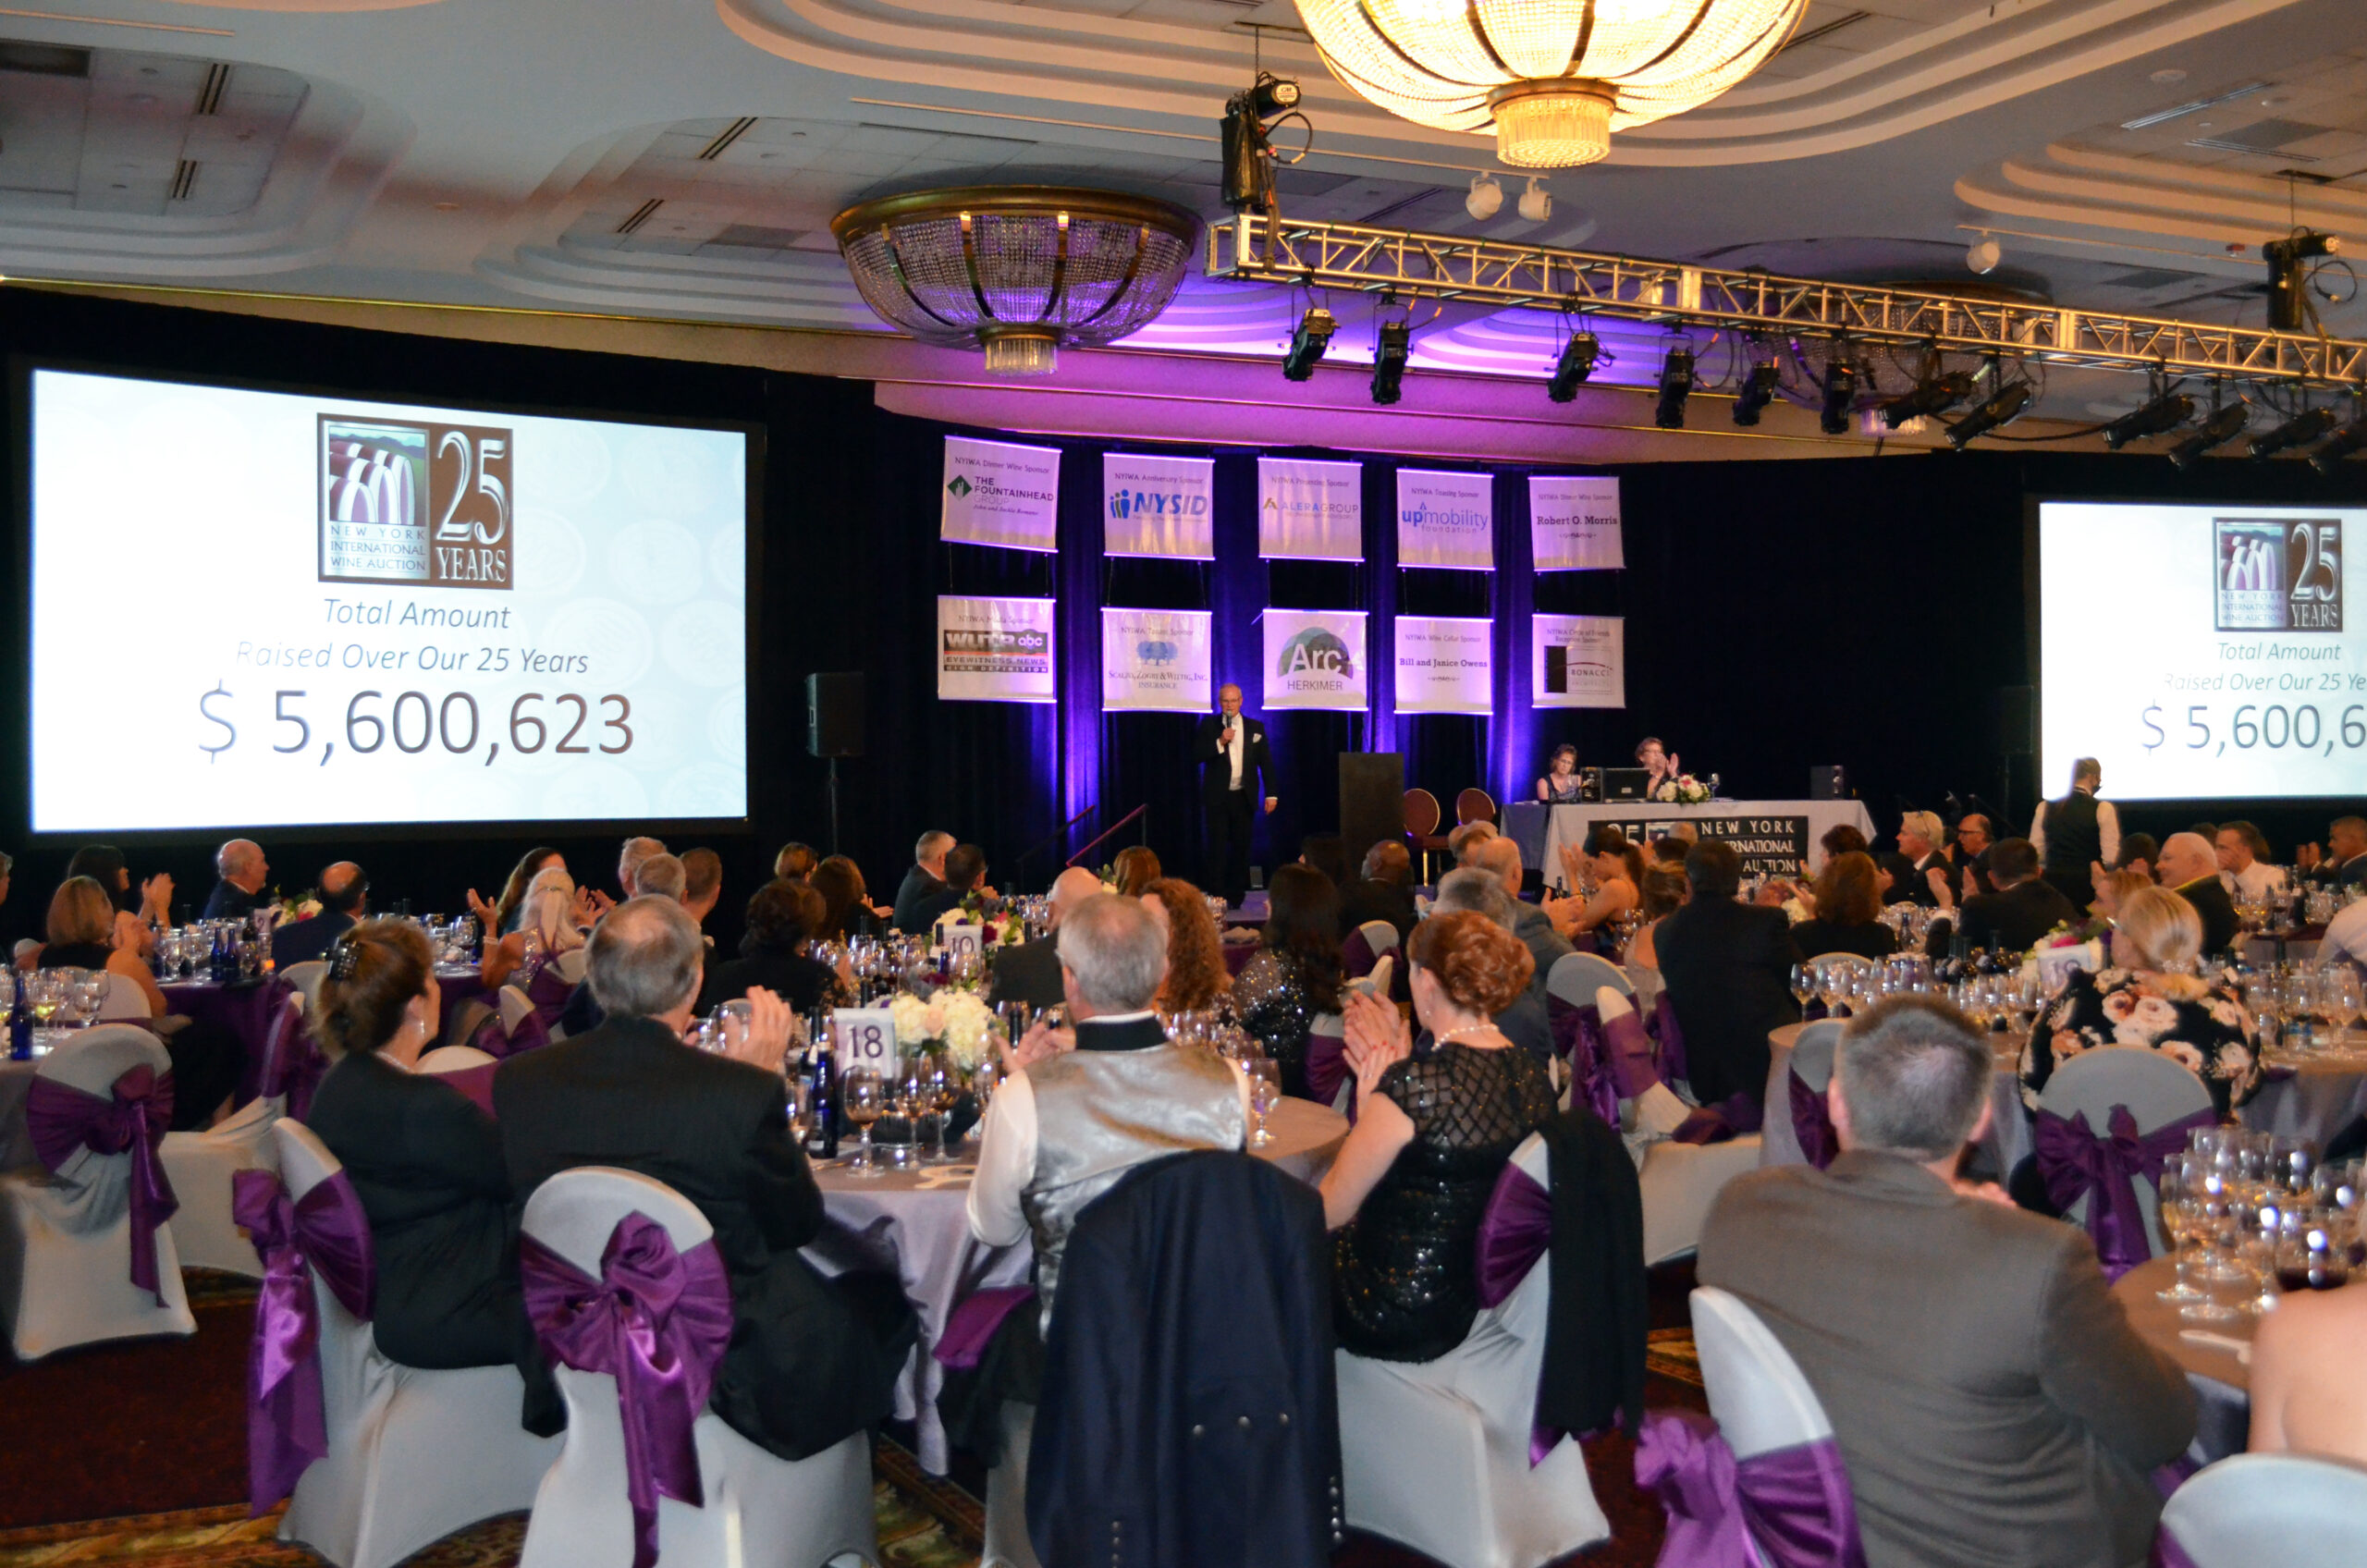 New York International Wine Auction Goes Out 'On Top', Raises Over $1.4 Million at its Grand Finale